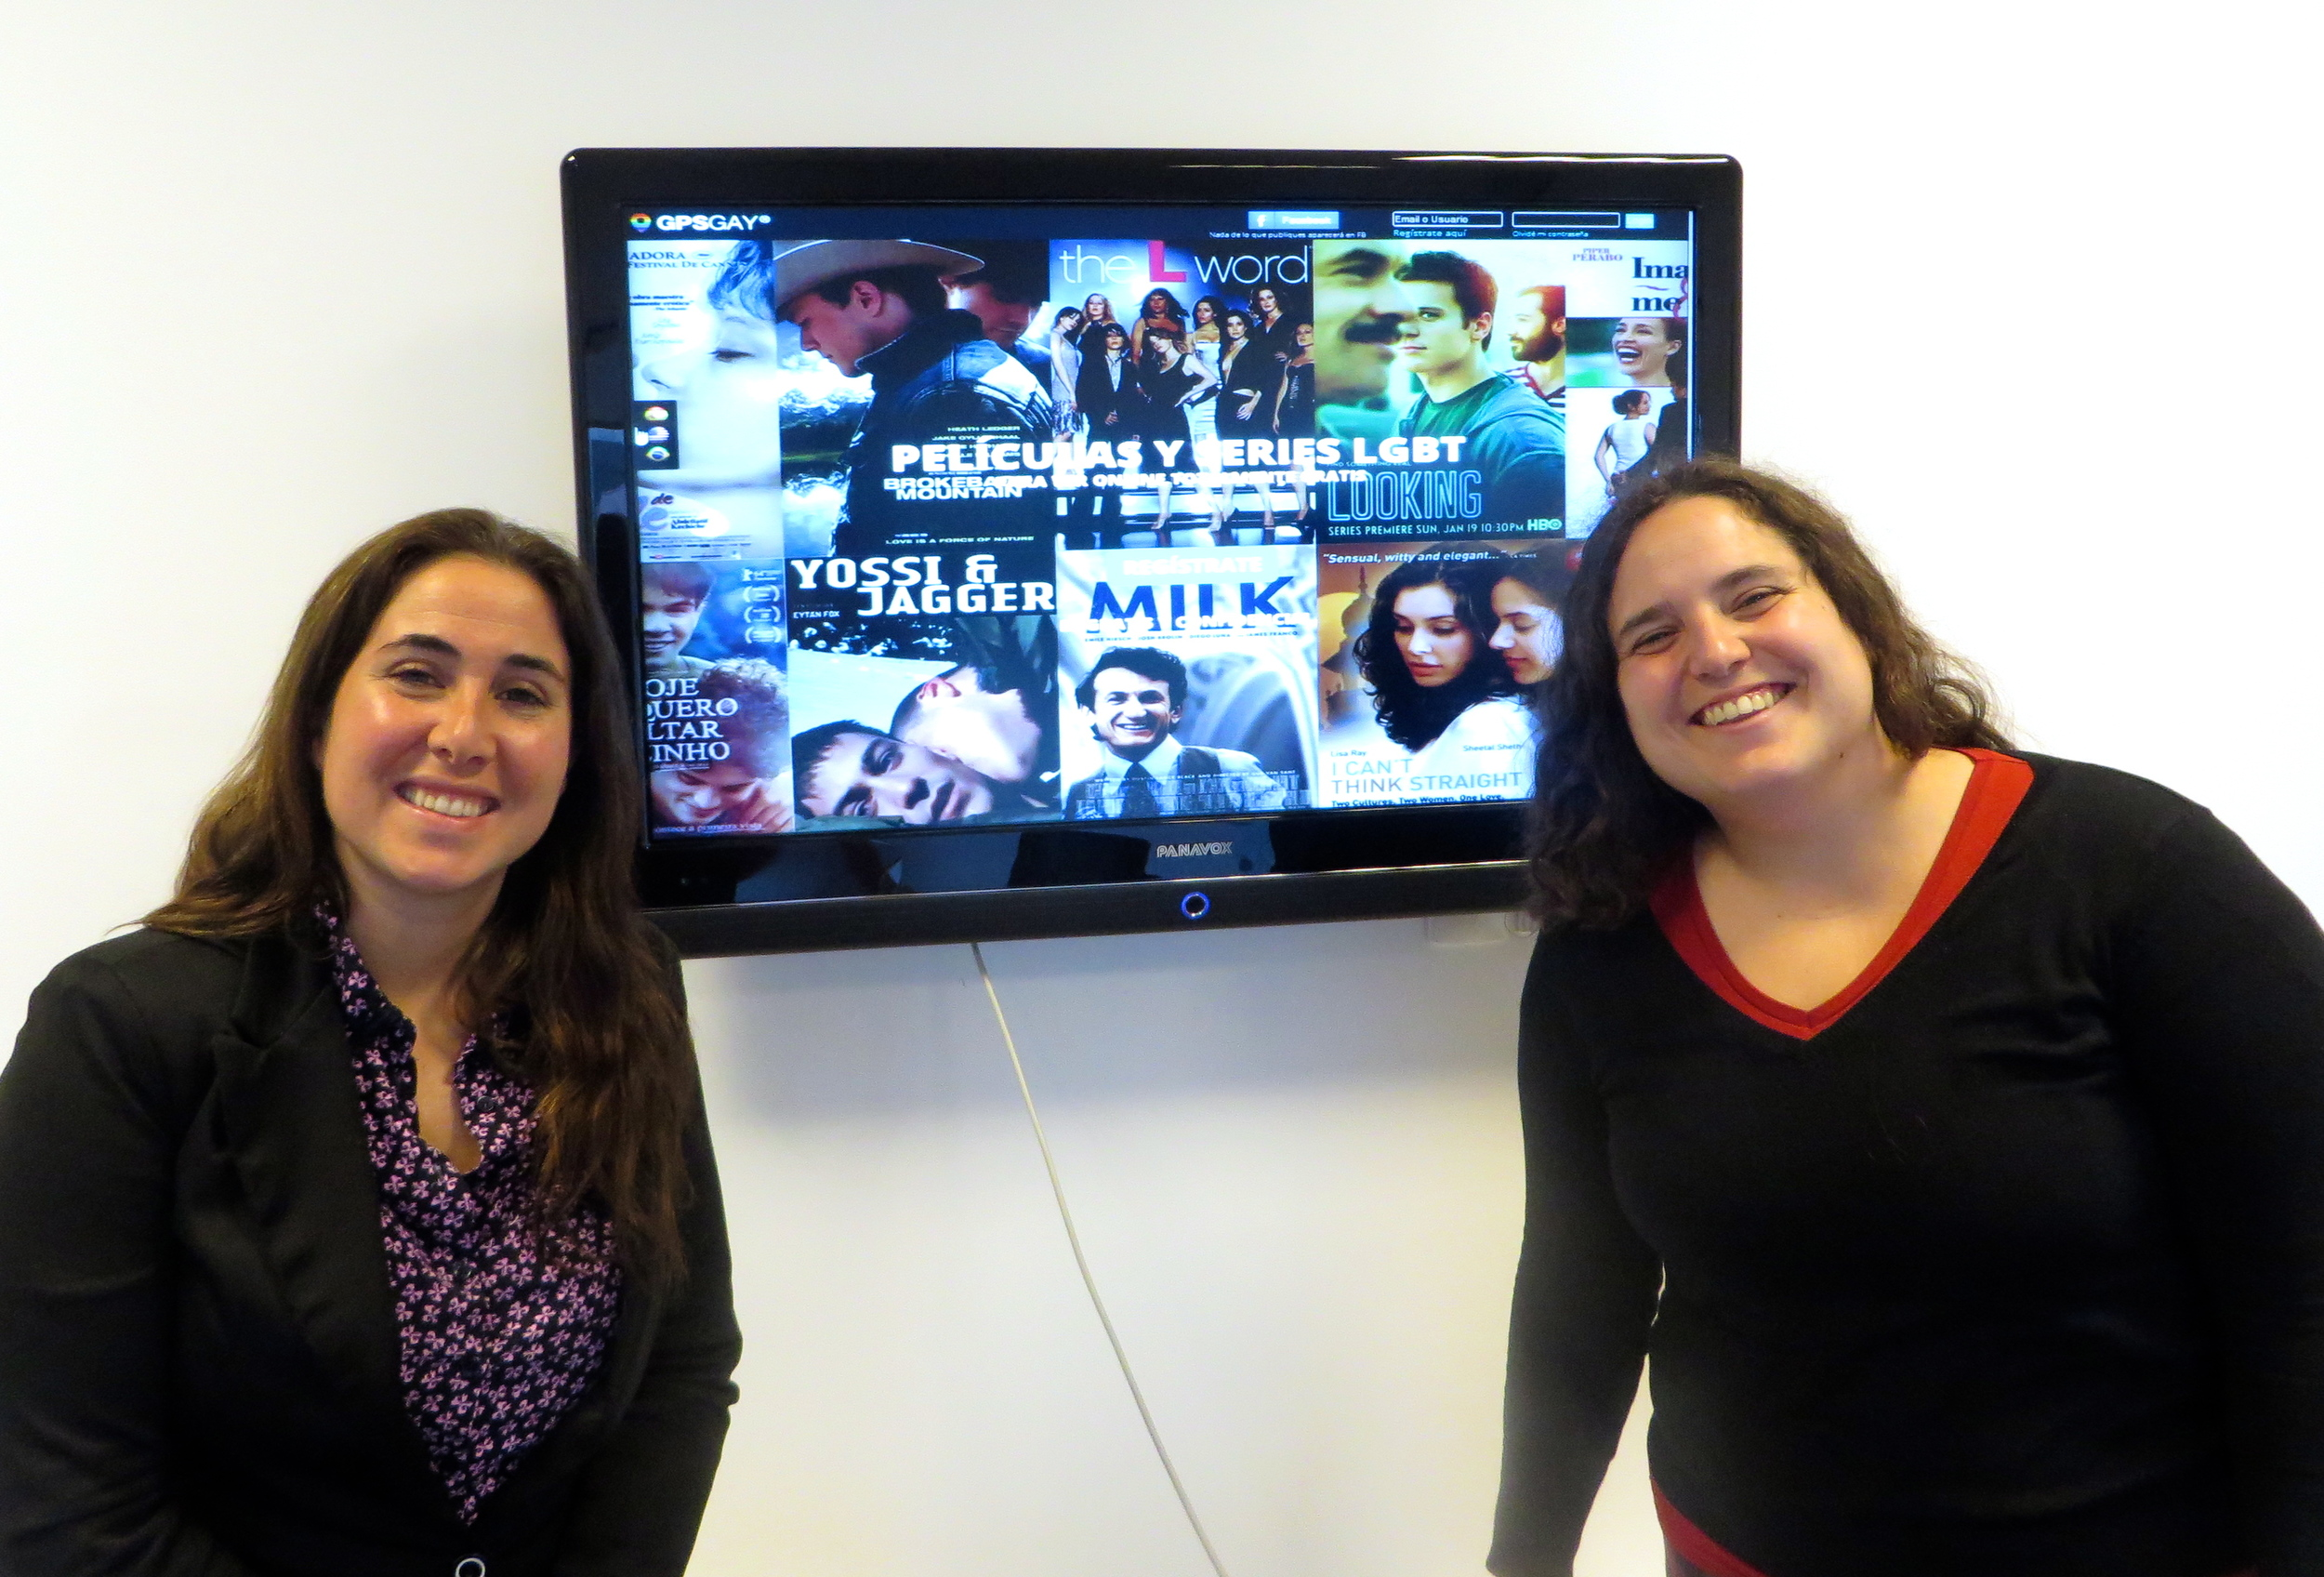 Magdalena Rodriguez (Left) and Rosario Monteverde (Right) of GPS Gay